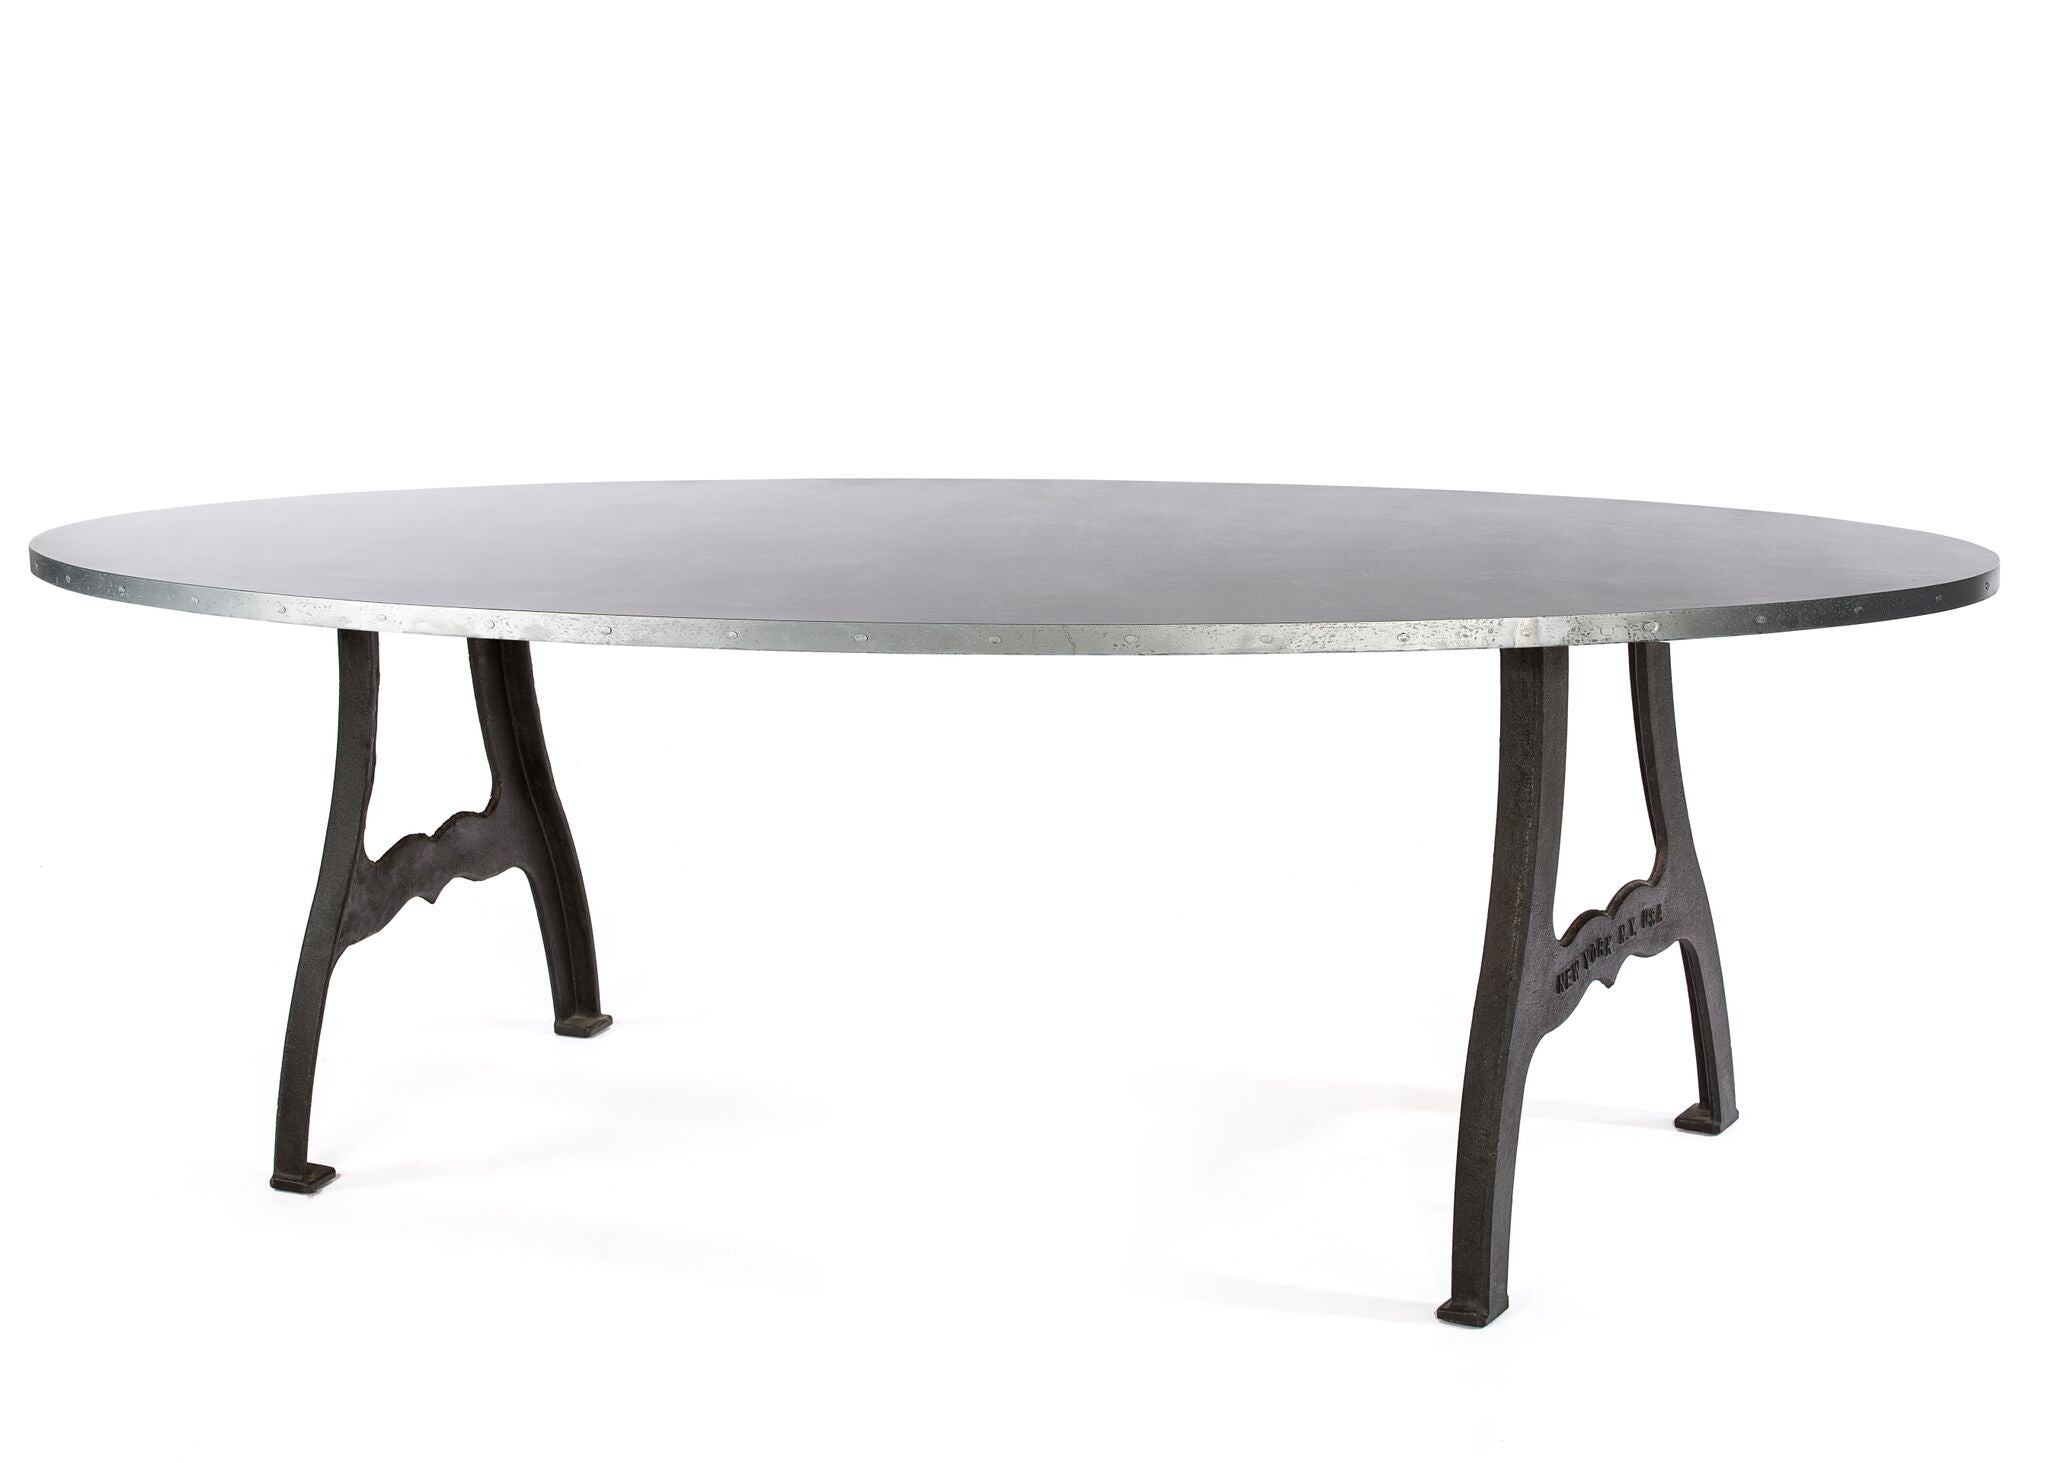 "Zinc Oval Tables | Williamsburg Table | CLASSIC | Black on Poplar | CUSTOM SIZE L 60 W 39 H 30 | 1.5"" Standard 